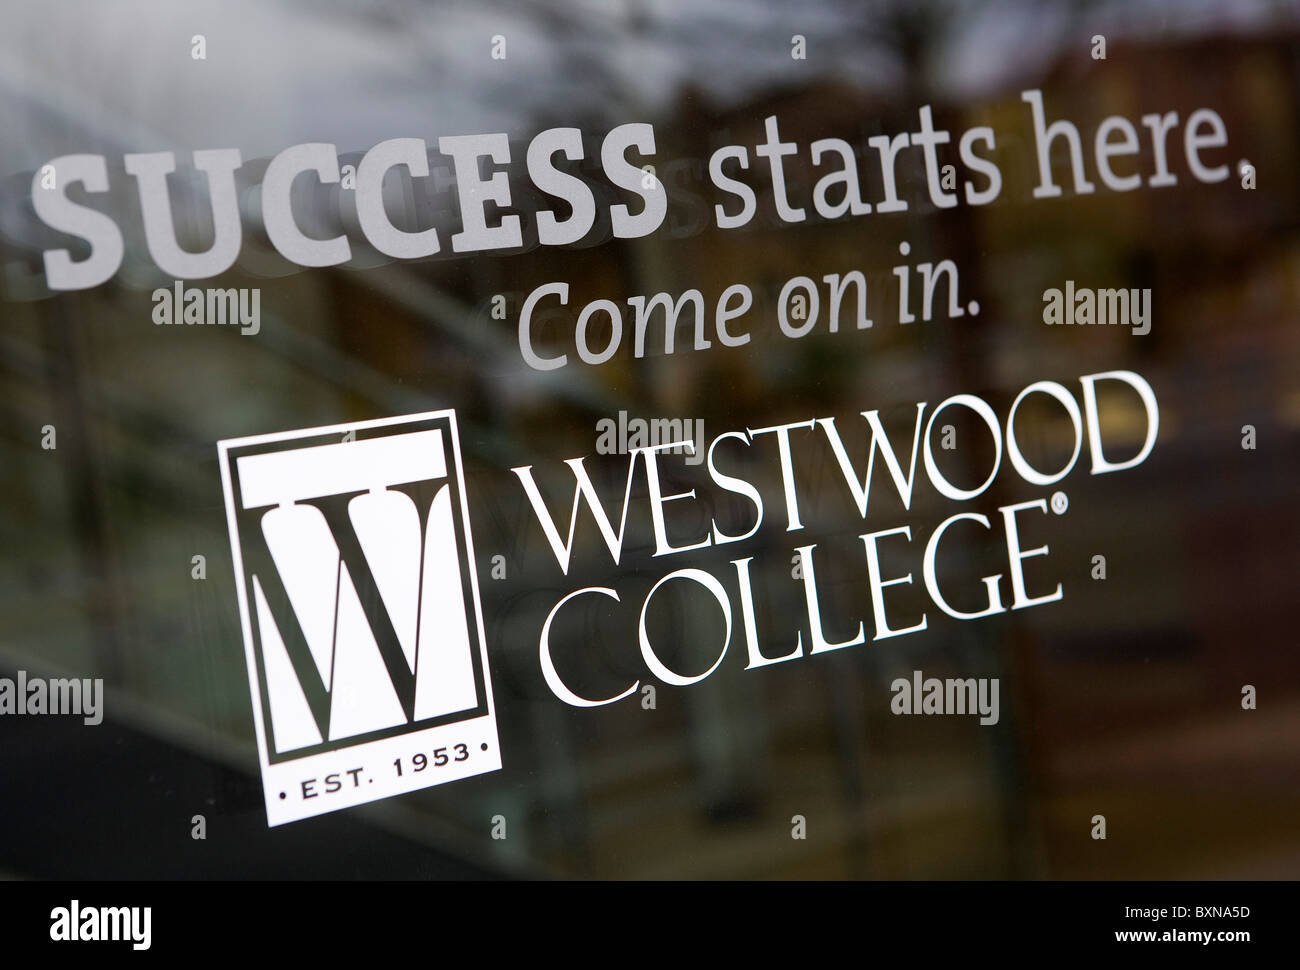 A Westwood College for-profit college. - Stock Image